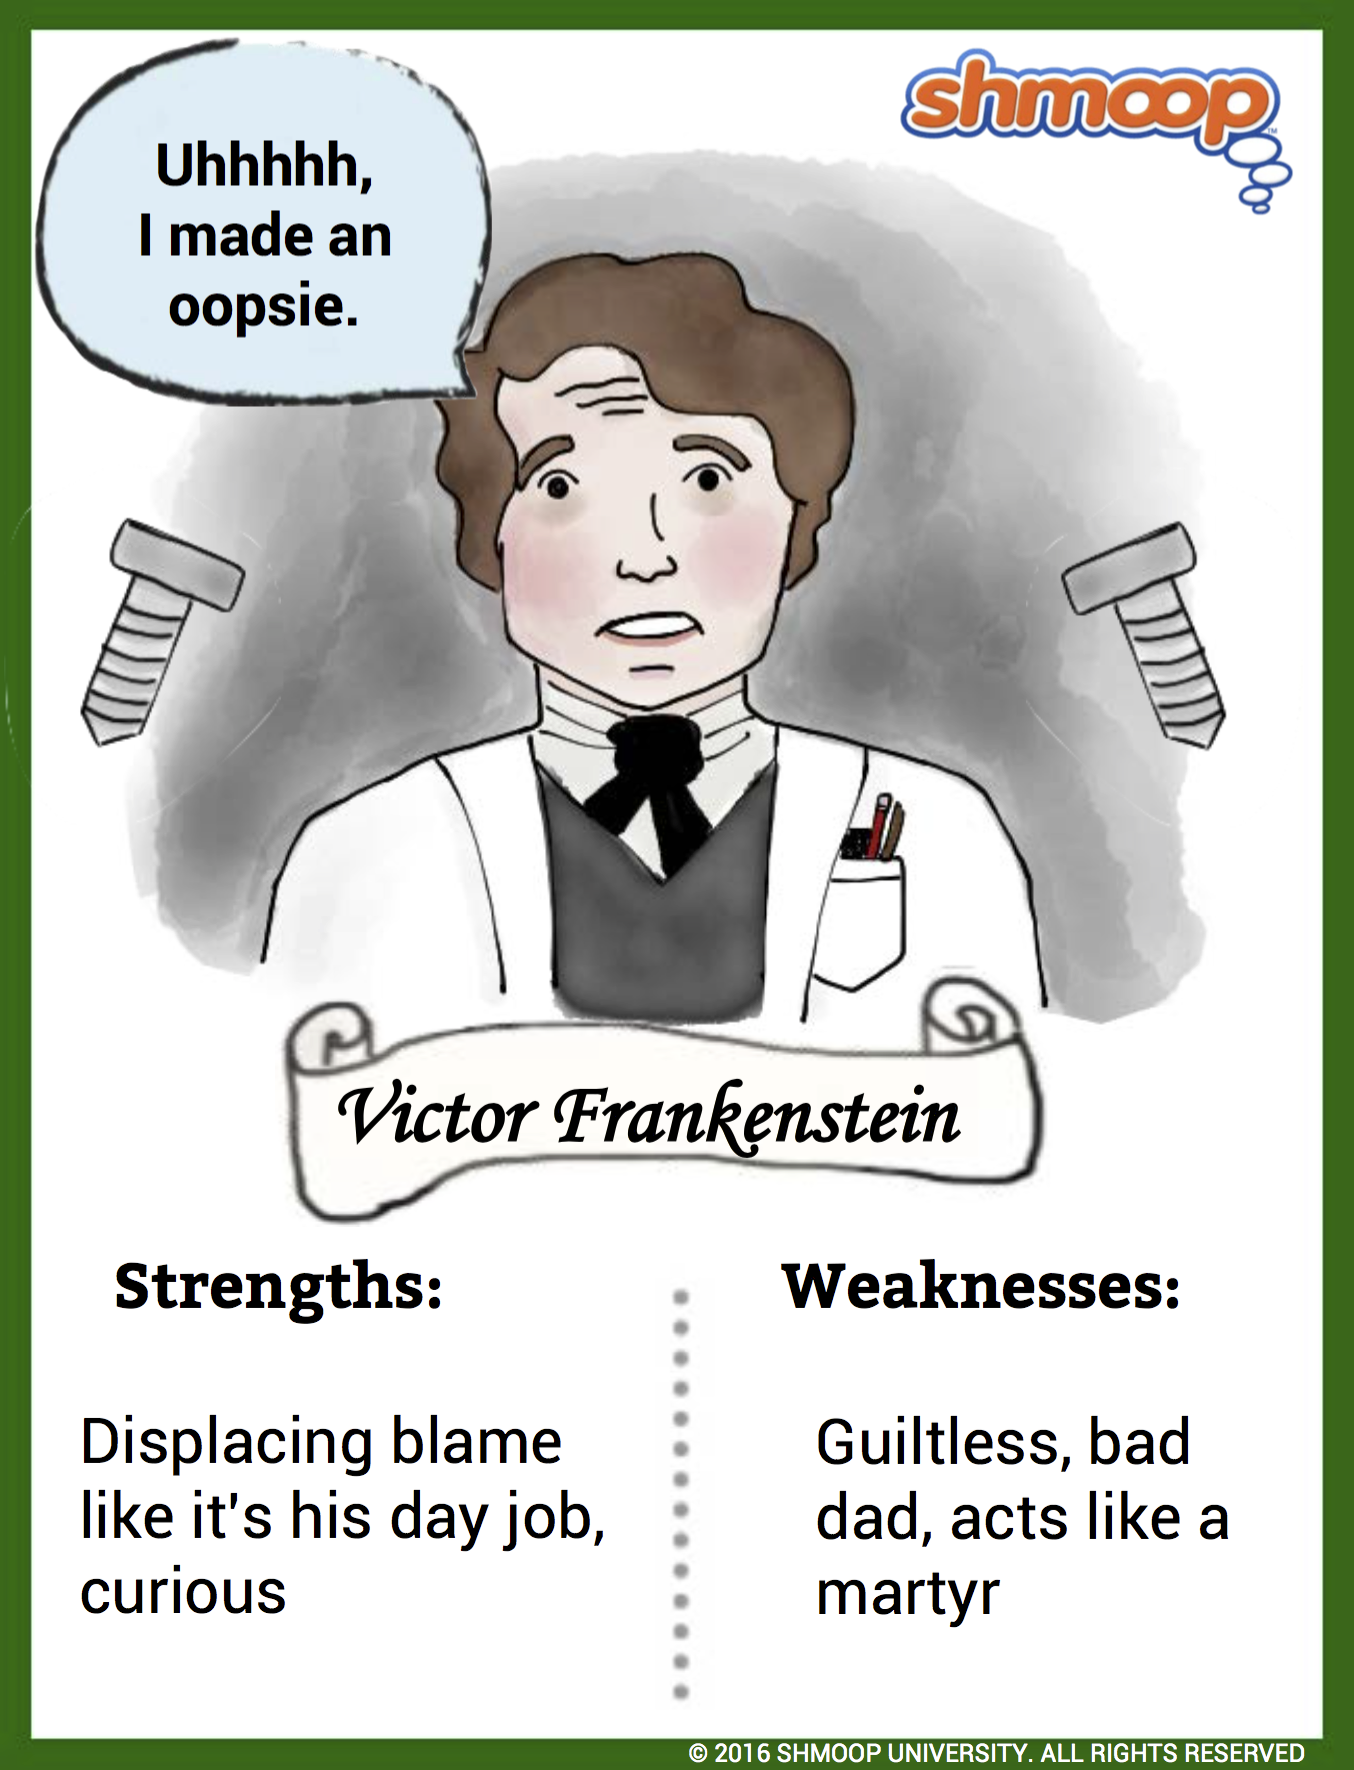 psychoanalysis victor frankenstein frankenstein mary shelley But the more closely one examines freud and psychoanalytic practice,  the  imaginary pair victor frankenstein and his monster, mary shelley and her story.